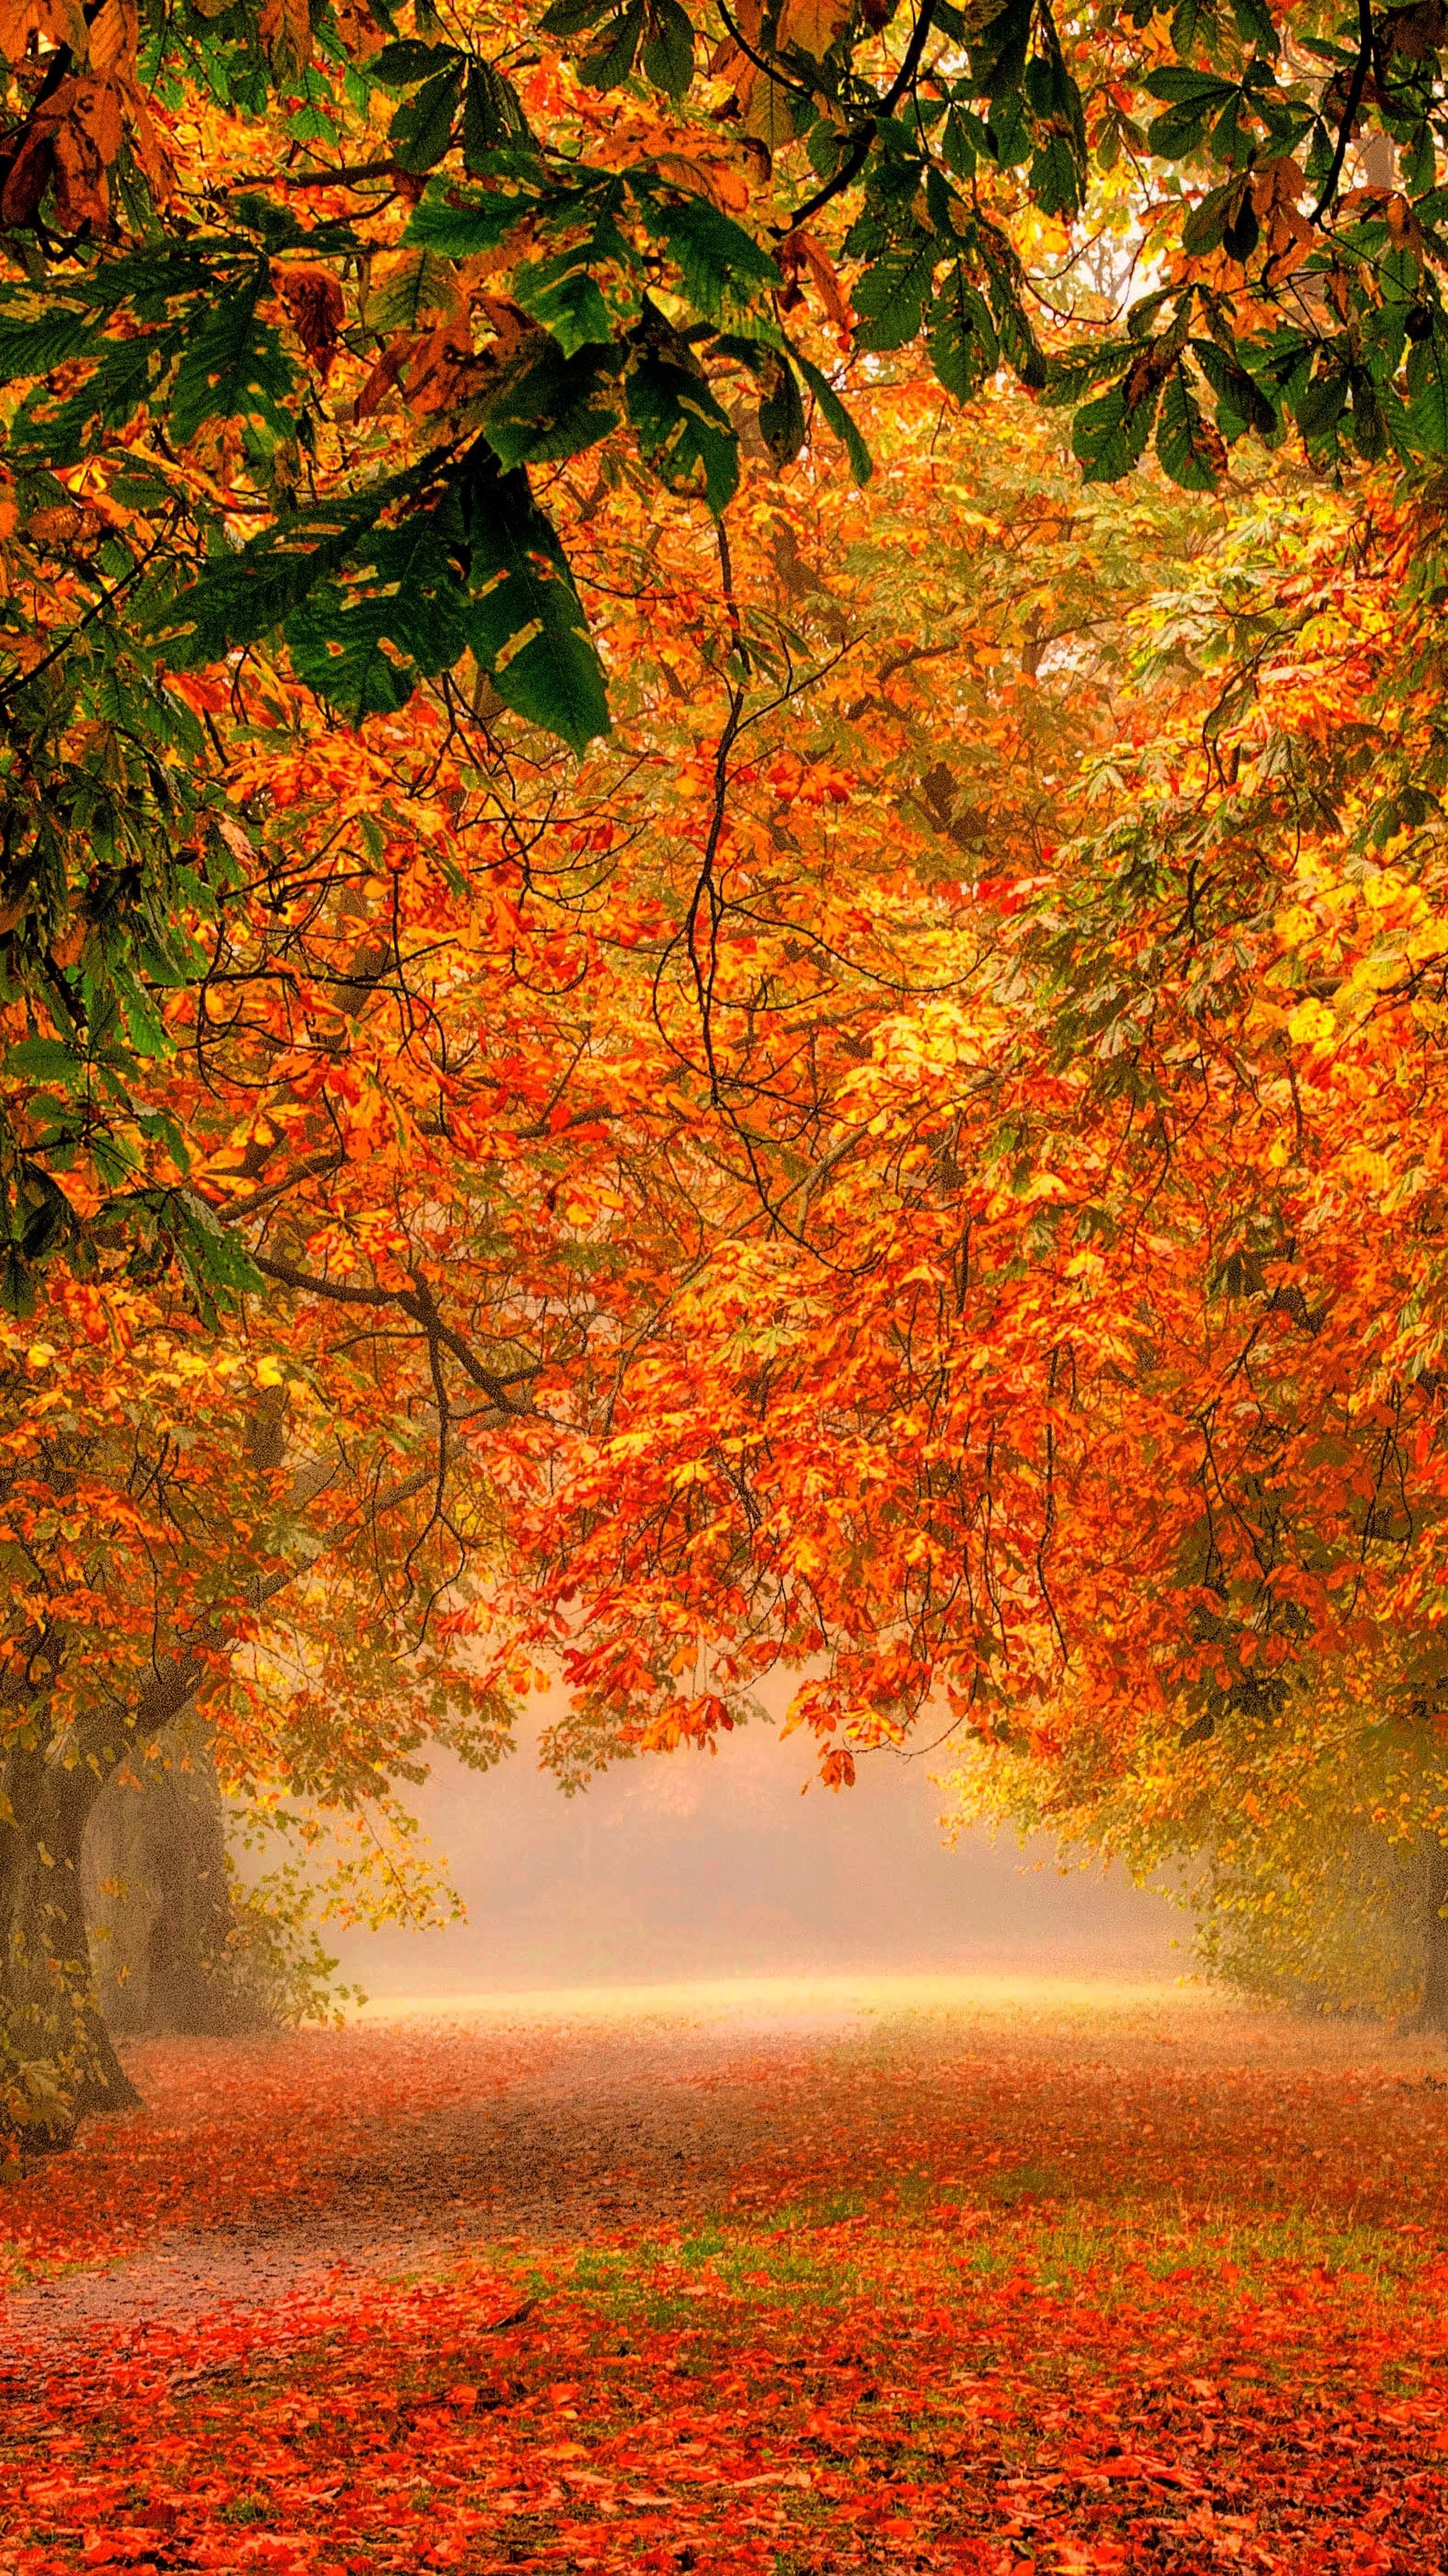 Cute Fall Wallpaper Iphone 5 Forest Nature Park Colorful Leaves Iphone Wallpaper